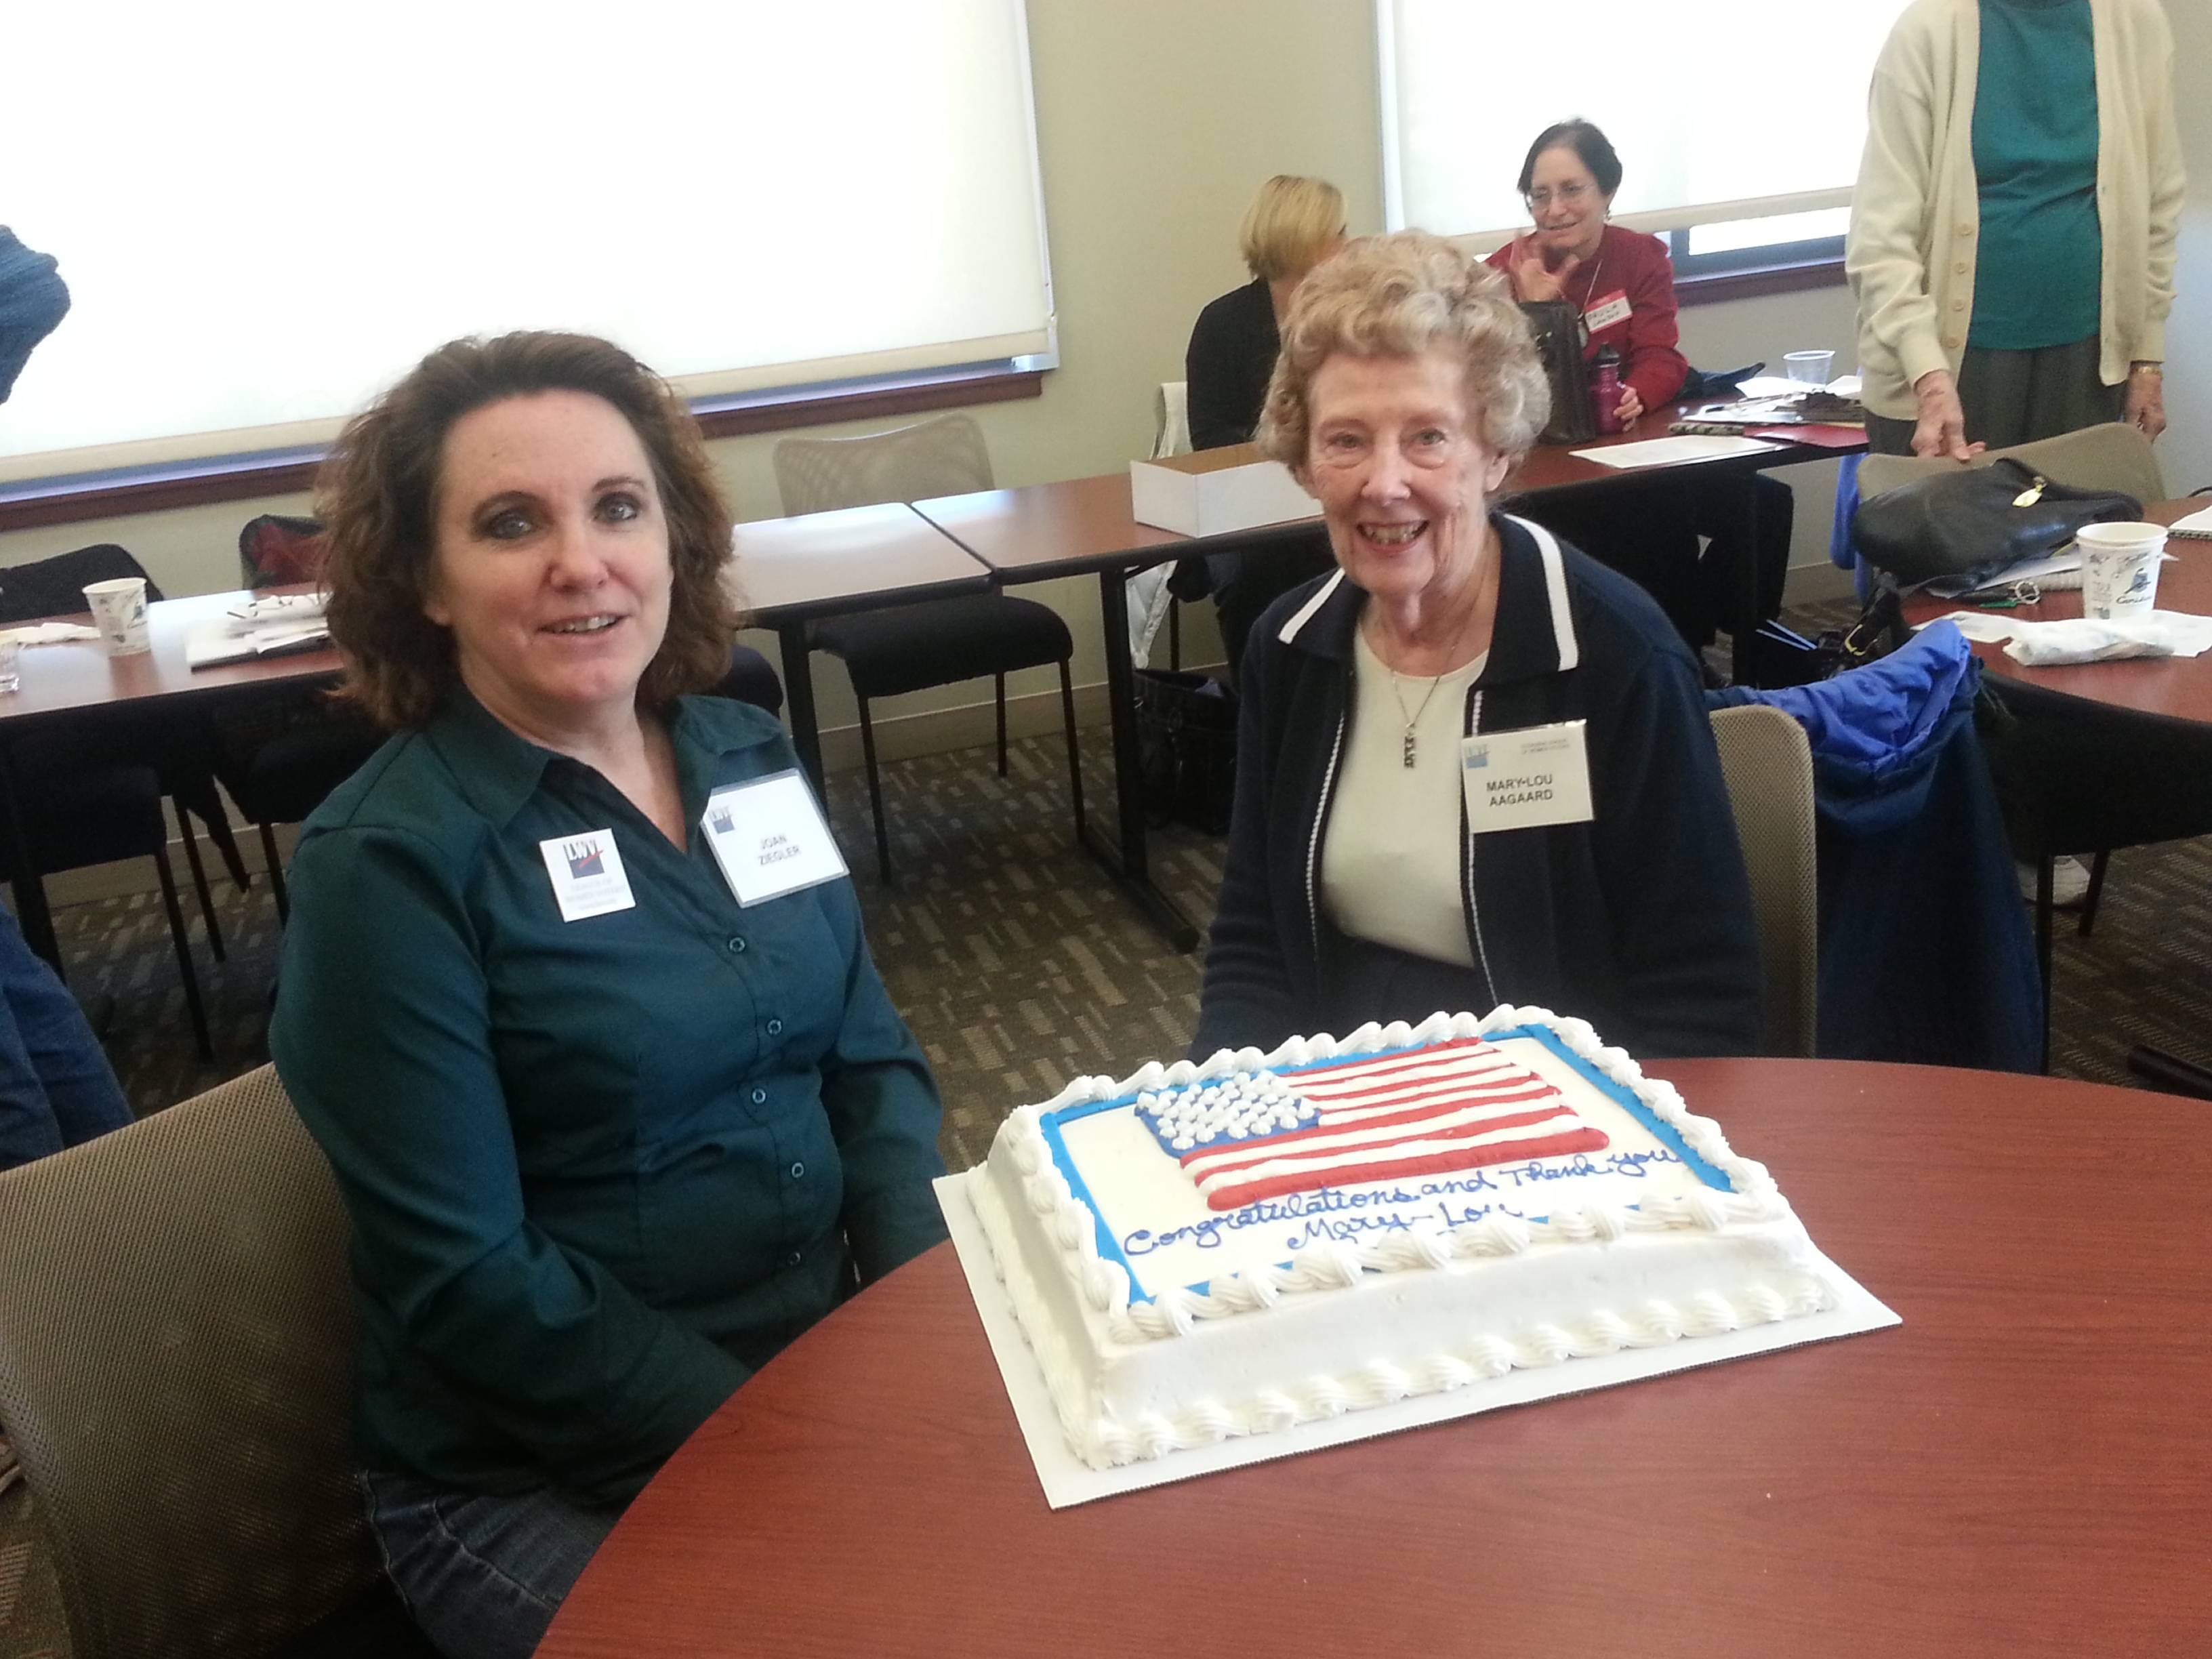 Joan Ziegler, President of League of Women Voters of Glenview, honors Mary-Lou Aagaard, recipient of 2012 Paul Simon Award